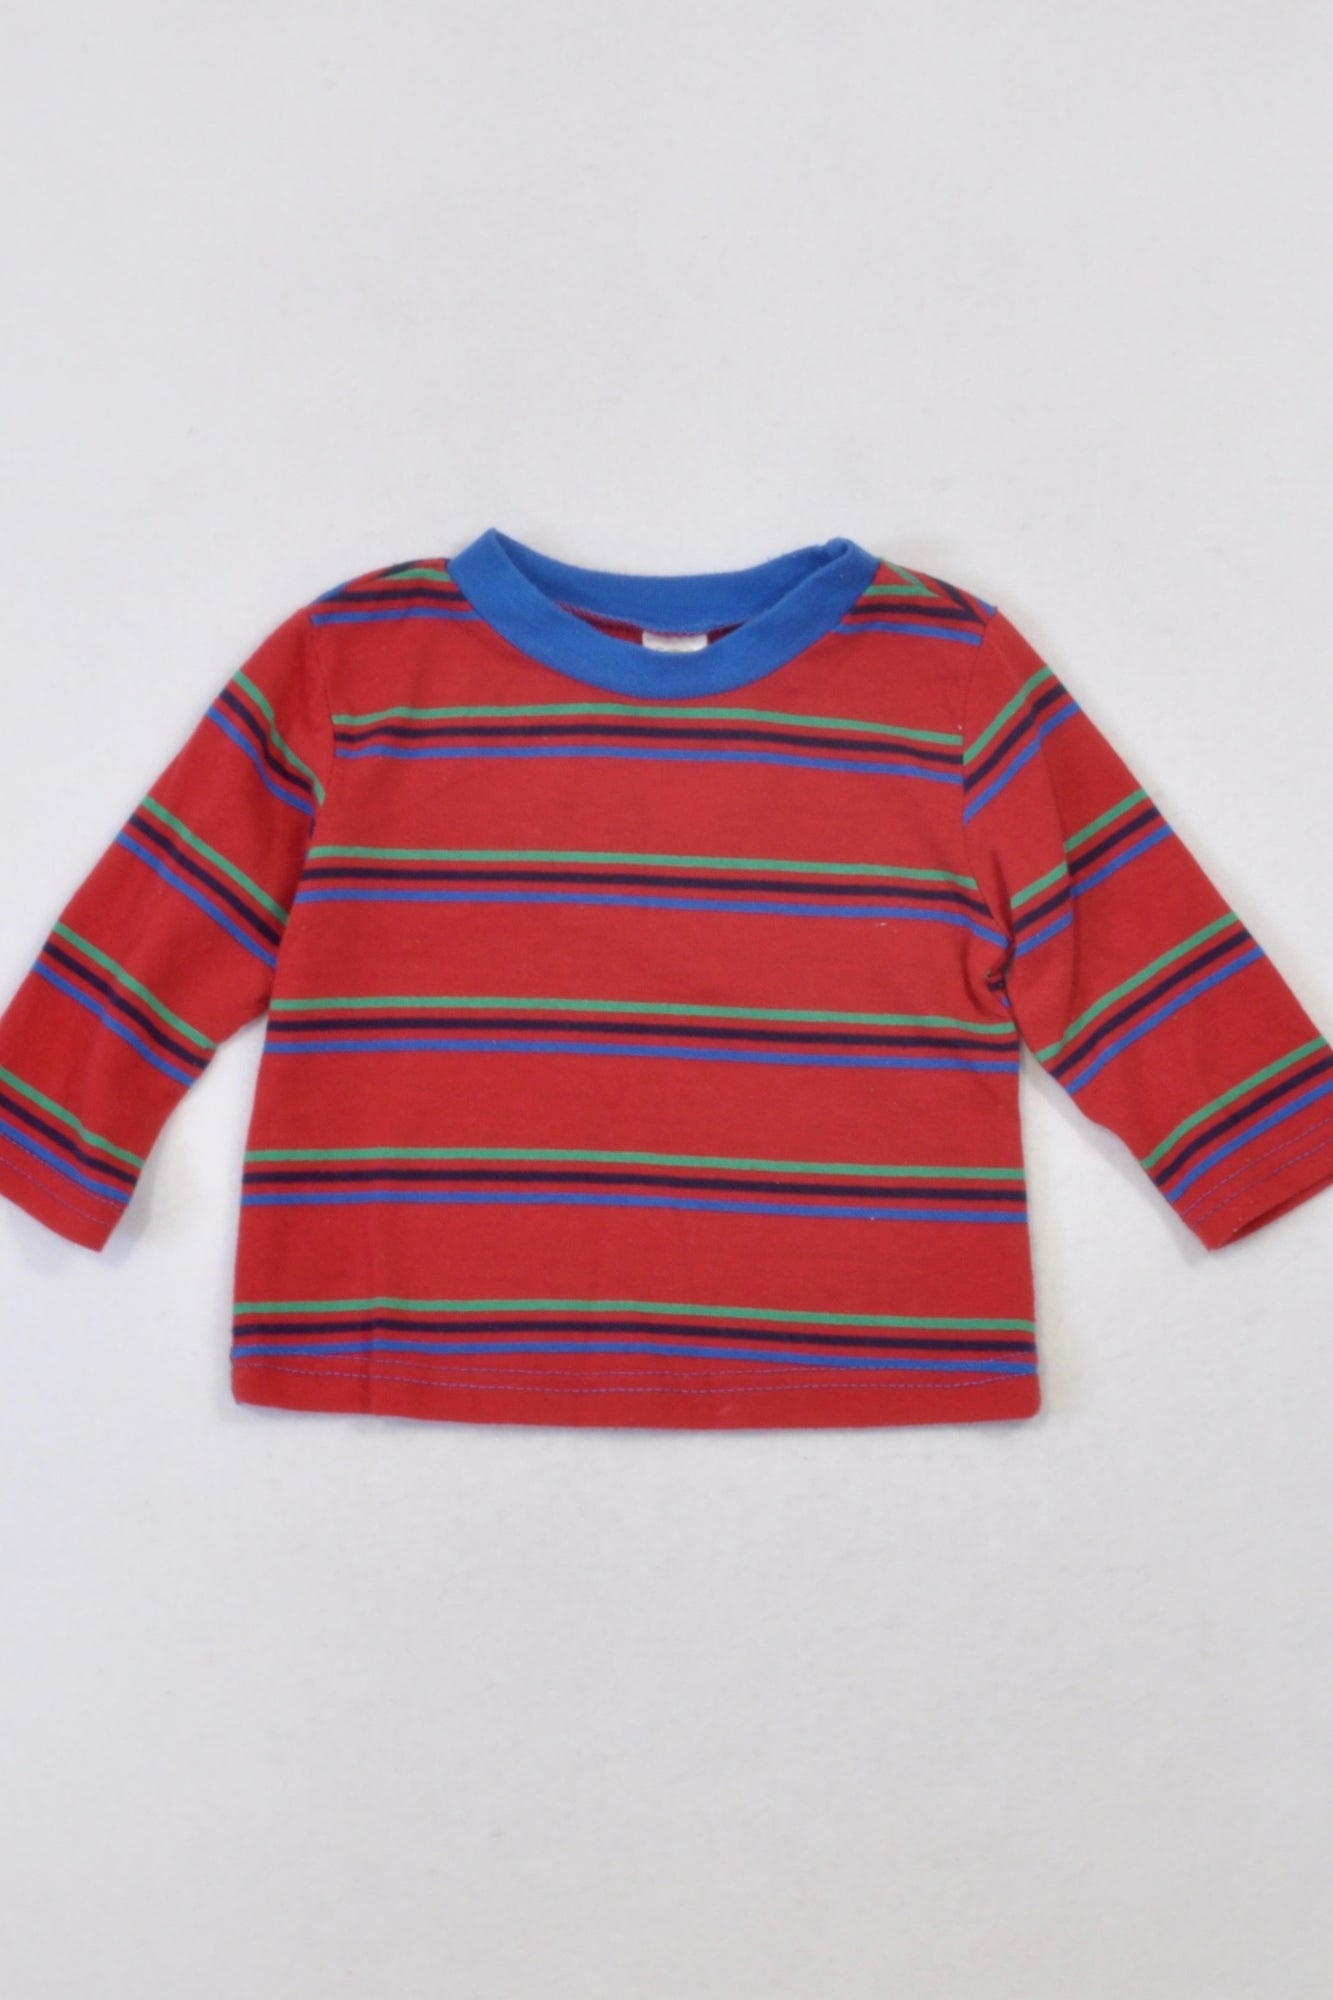 Ackermans Red & Navy Striped T-shirt Boys 6-12 months